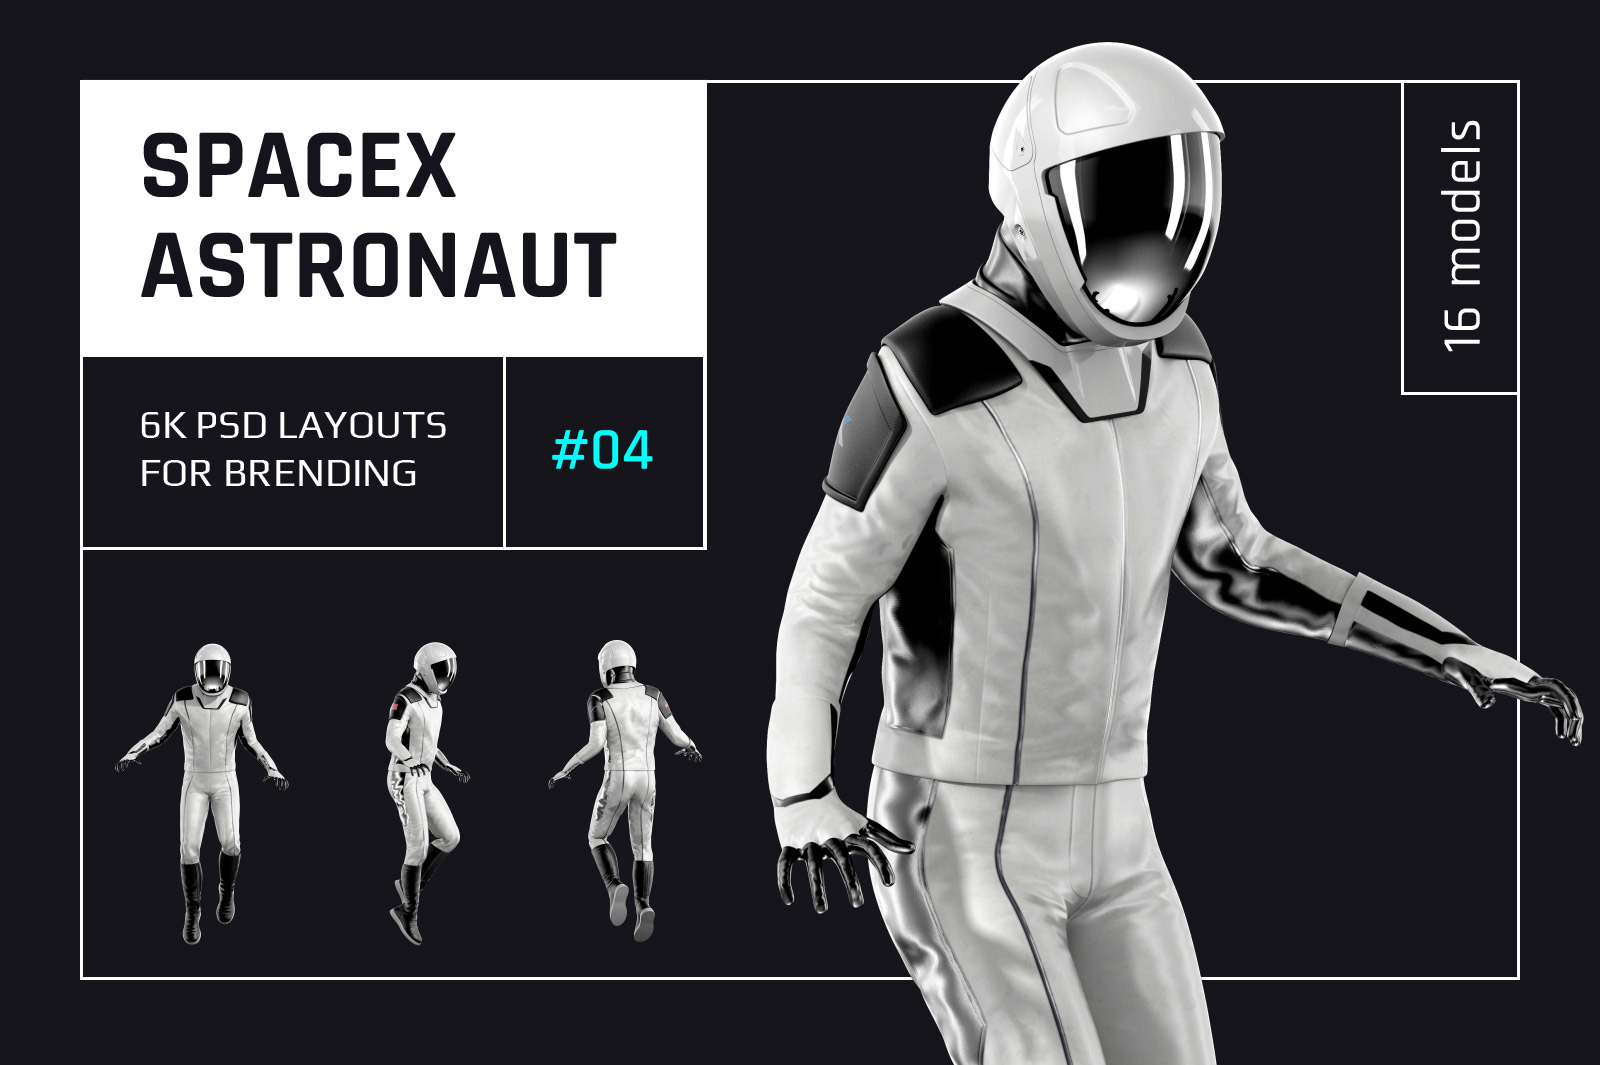 PSD Mockup 3D model SpaceX Astronaut #04